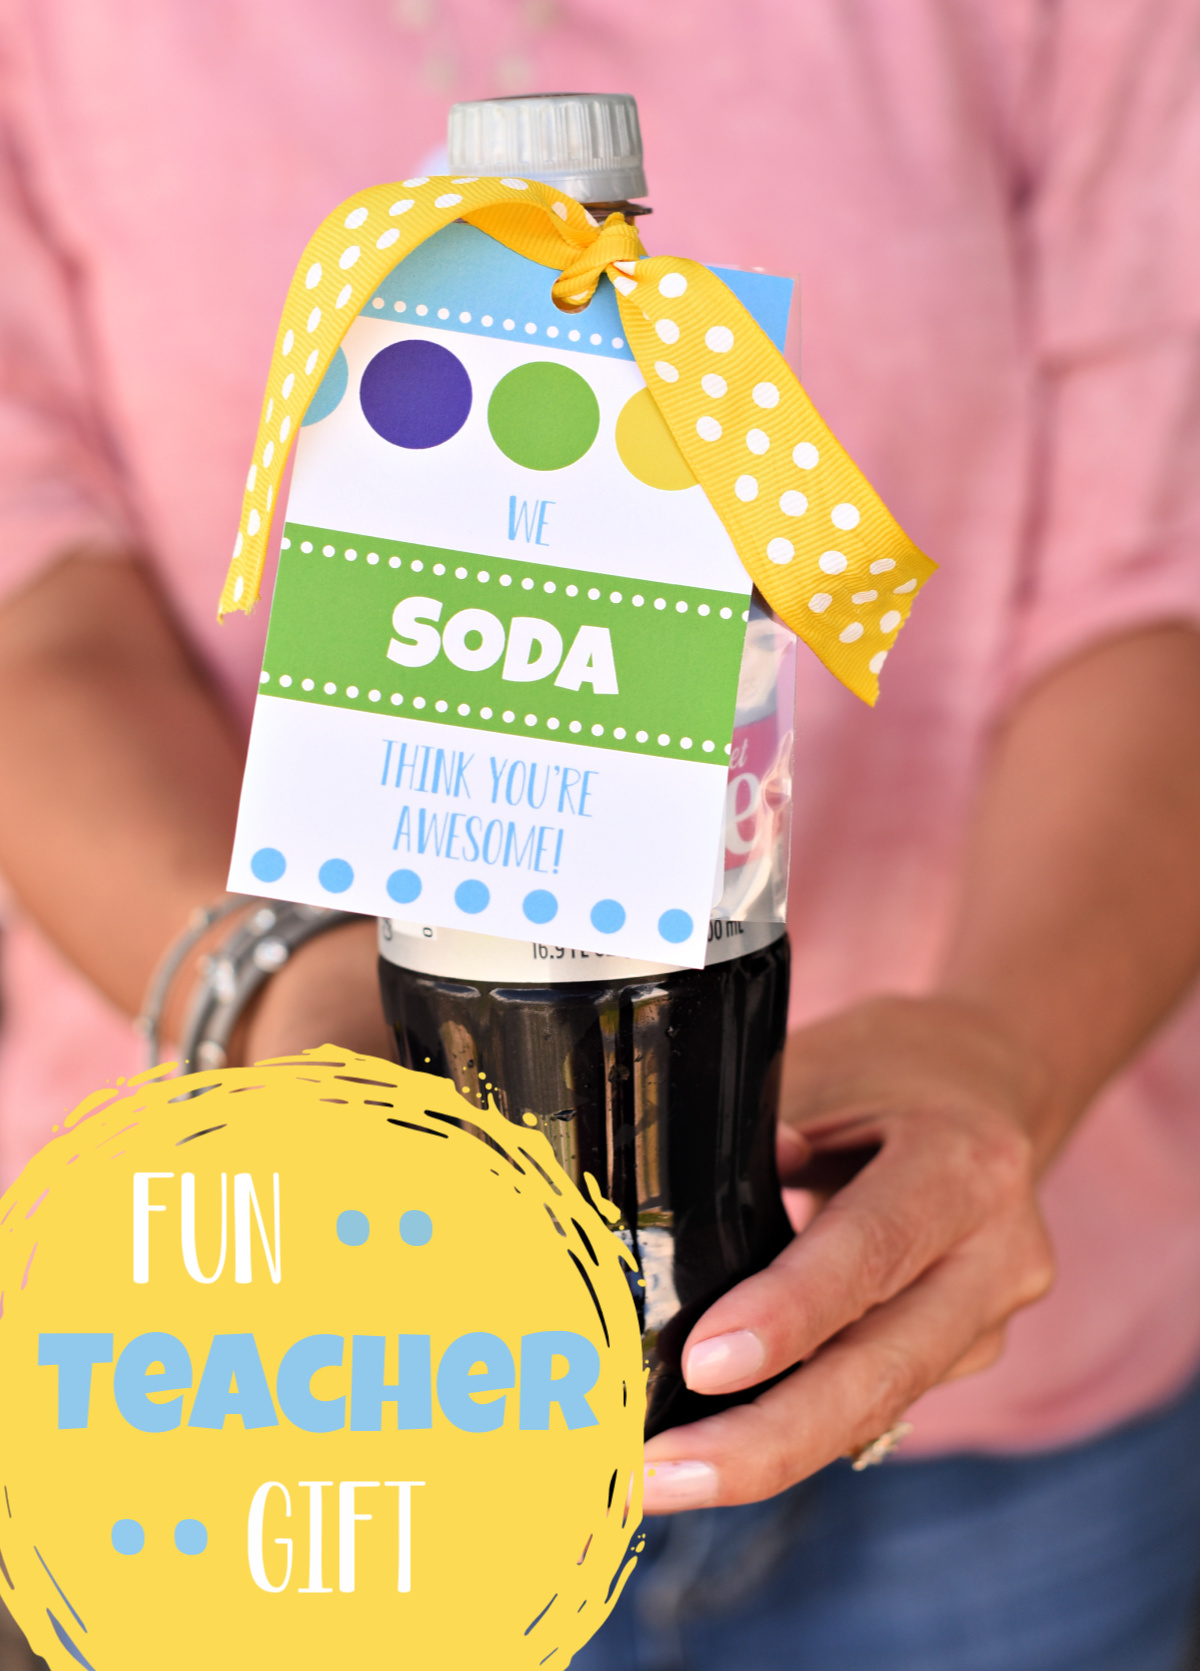 Soda Awesome Gift Idea. Perfect teacher appreciation gift idea for any teacher. #teachergifts #teacherappreciation #teacherappreciationgift